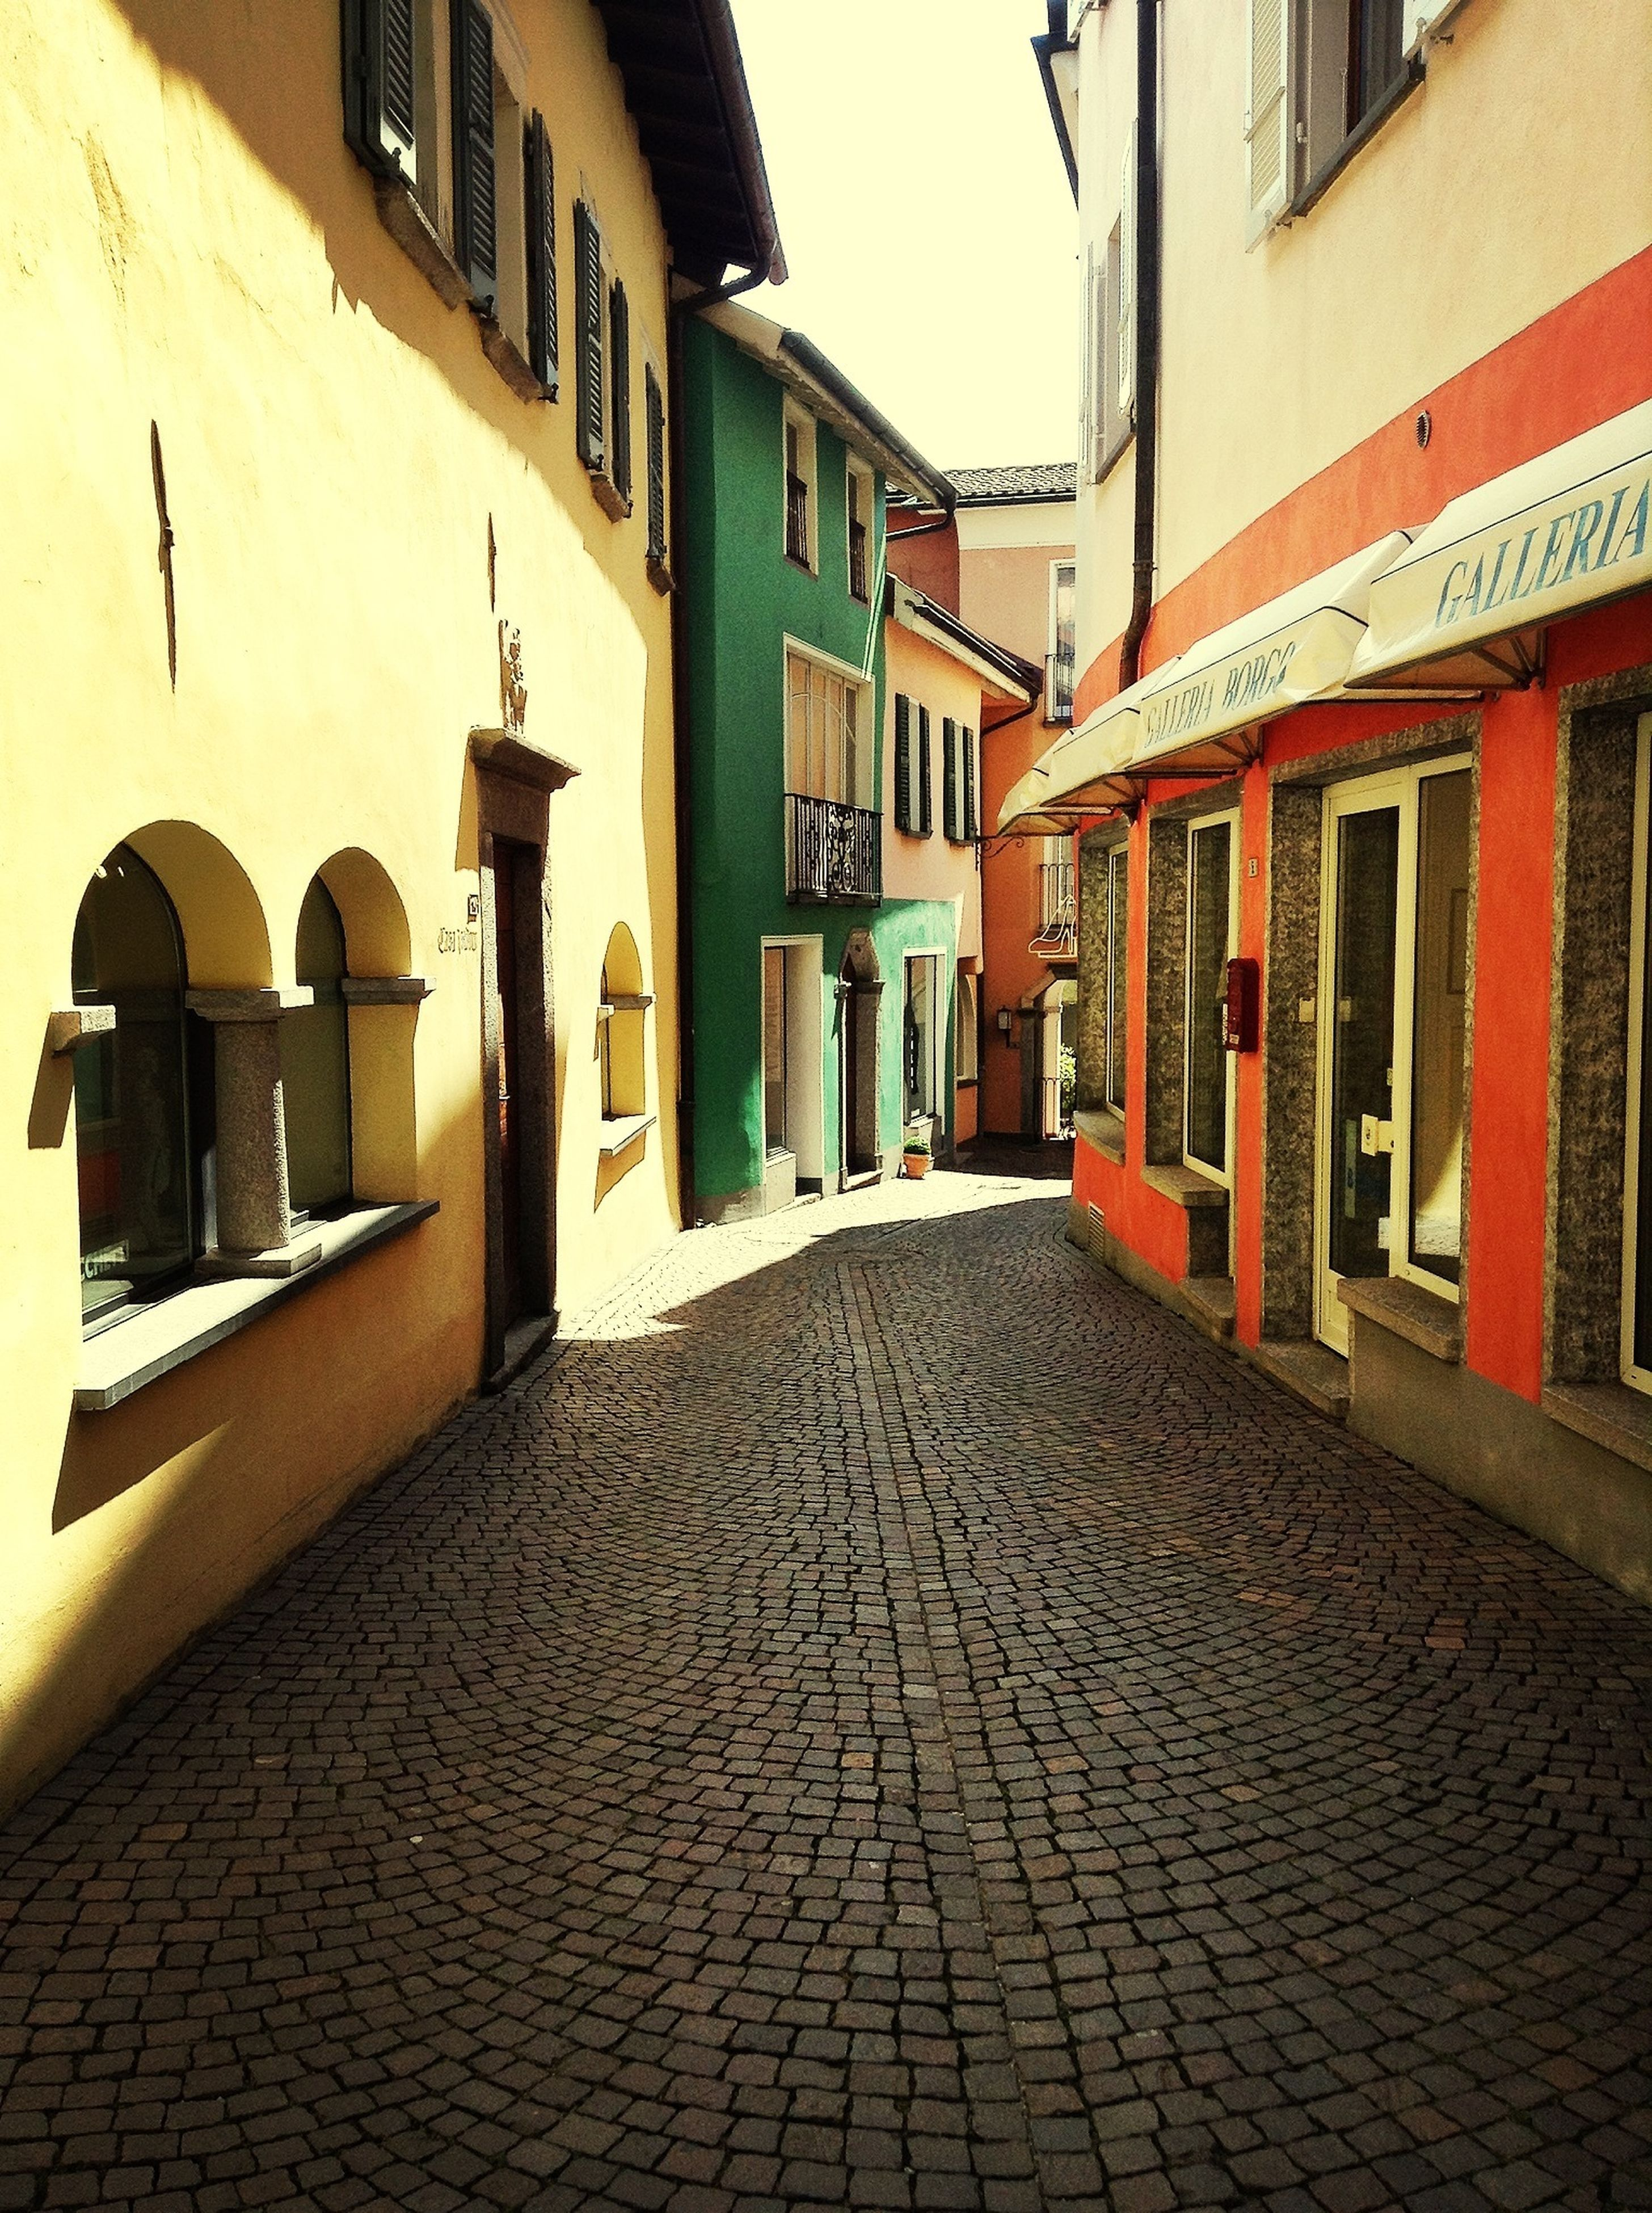 architecture, building exterior, built structure, the way forward, cobblestone, residential building, diminishing perspective, residential structure, street, alley, building, narrow, empty, city, walkway, window, paving stone, house, pathway, day